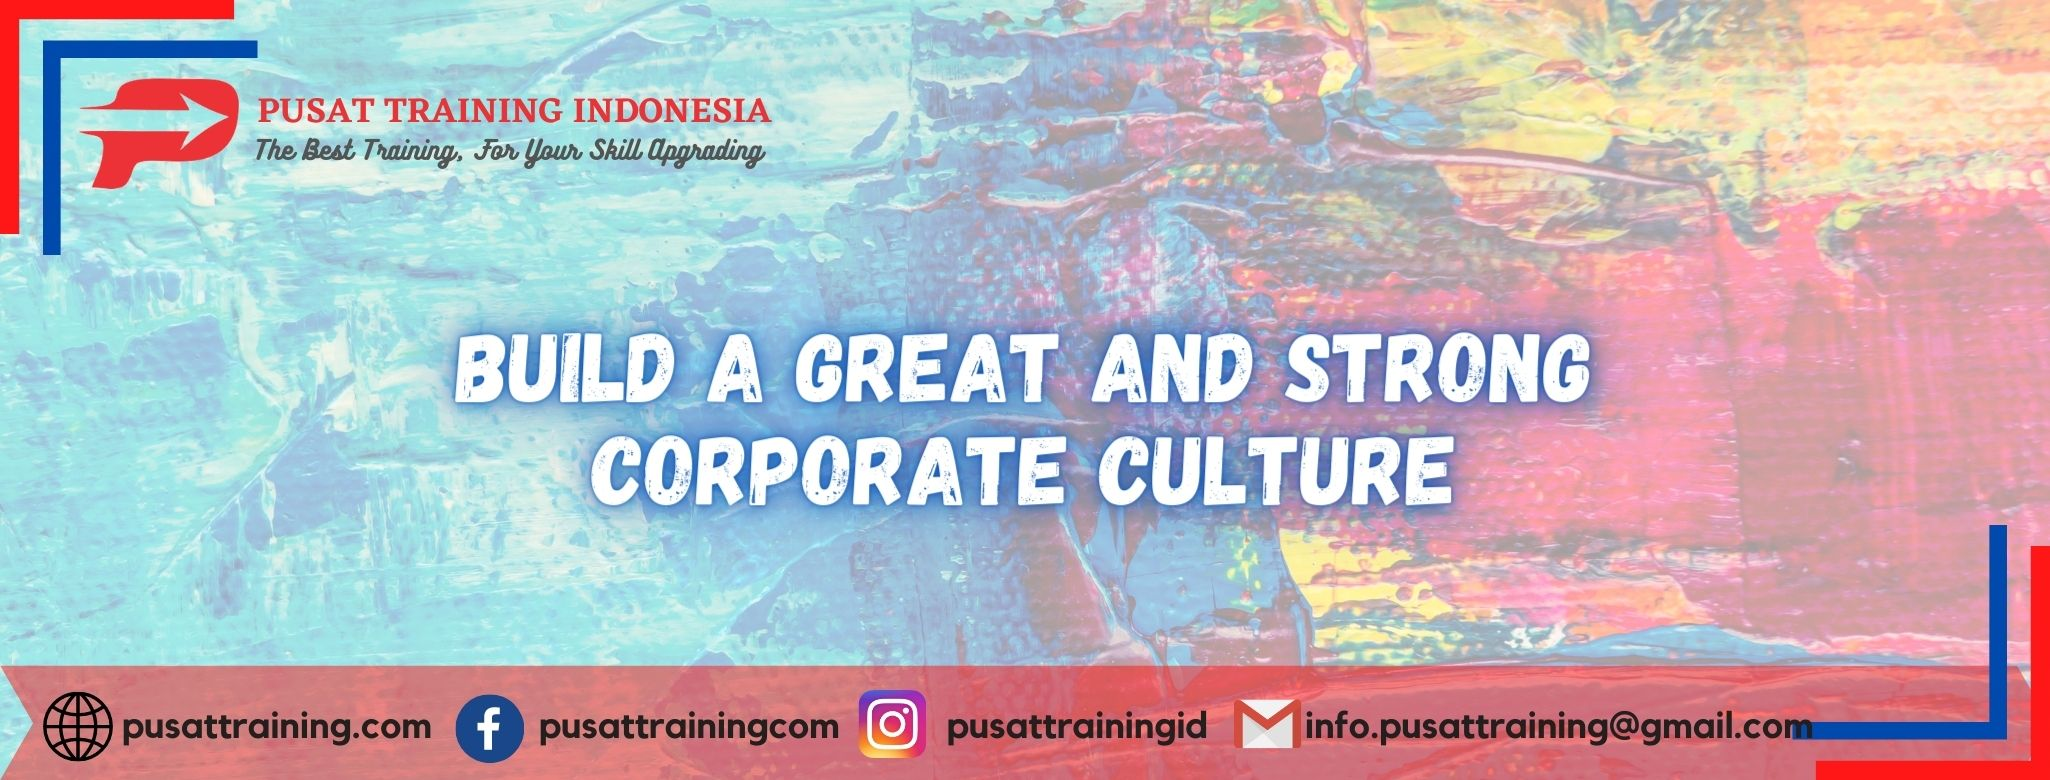 Build-a-Great-and-Strong-Corporate-Culture